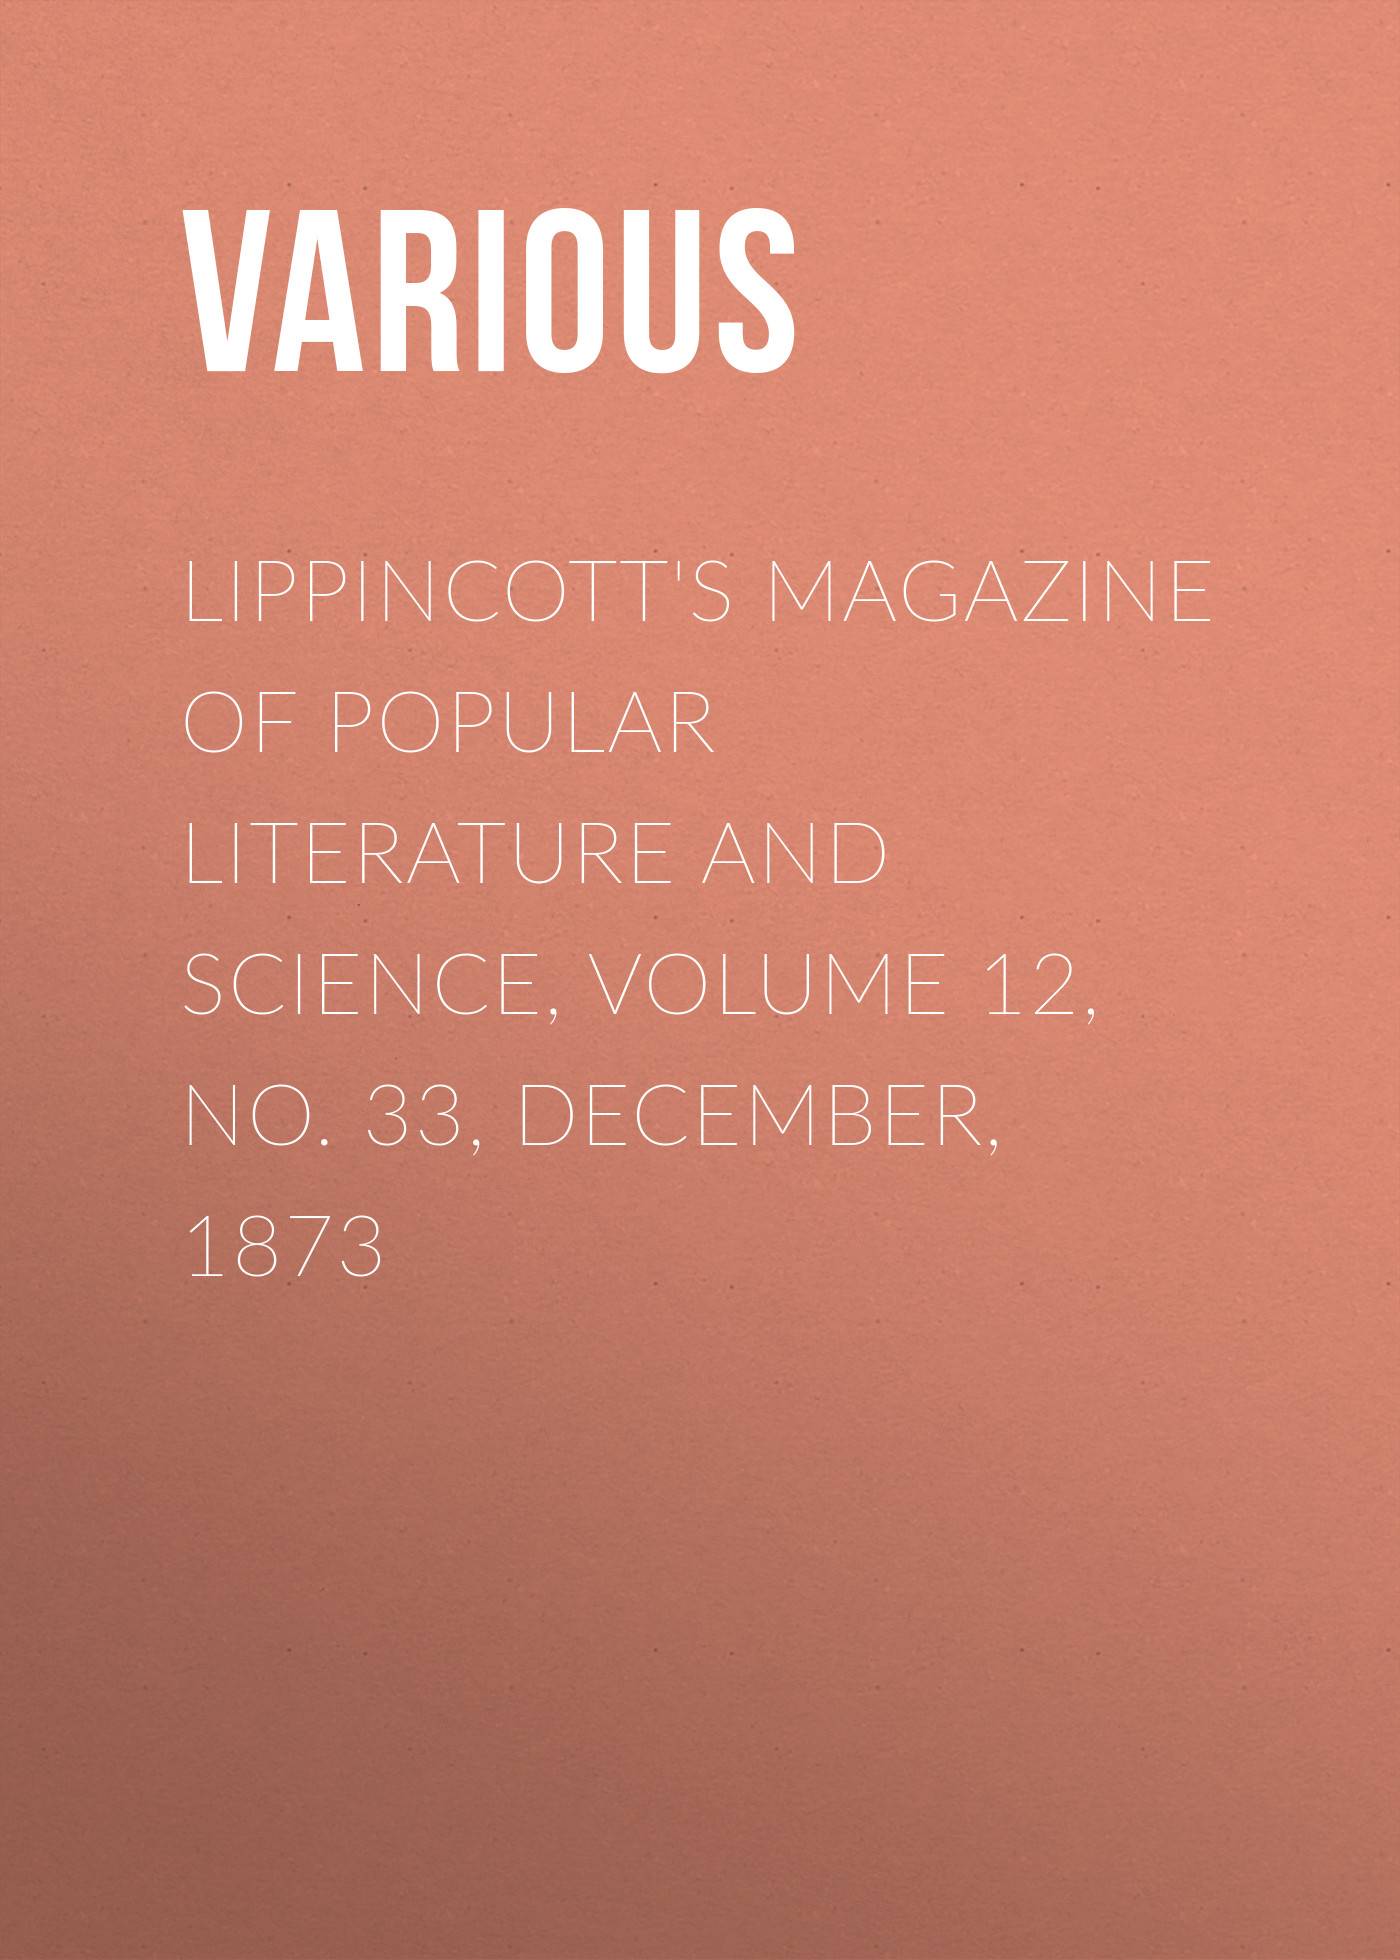 цены Various Lippincott's Magazine of Popular Literature and Science, Volume 12, No. 33, December, 1873